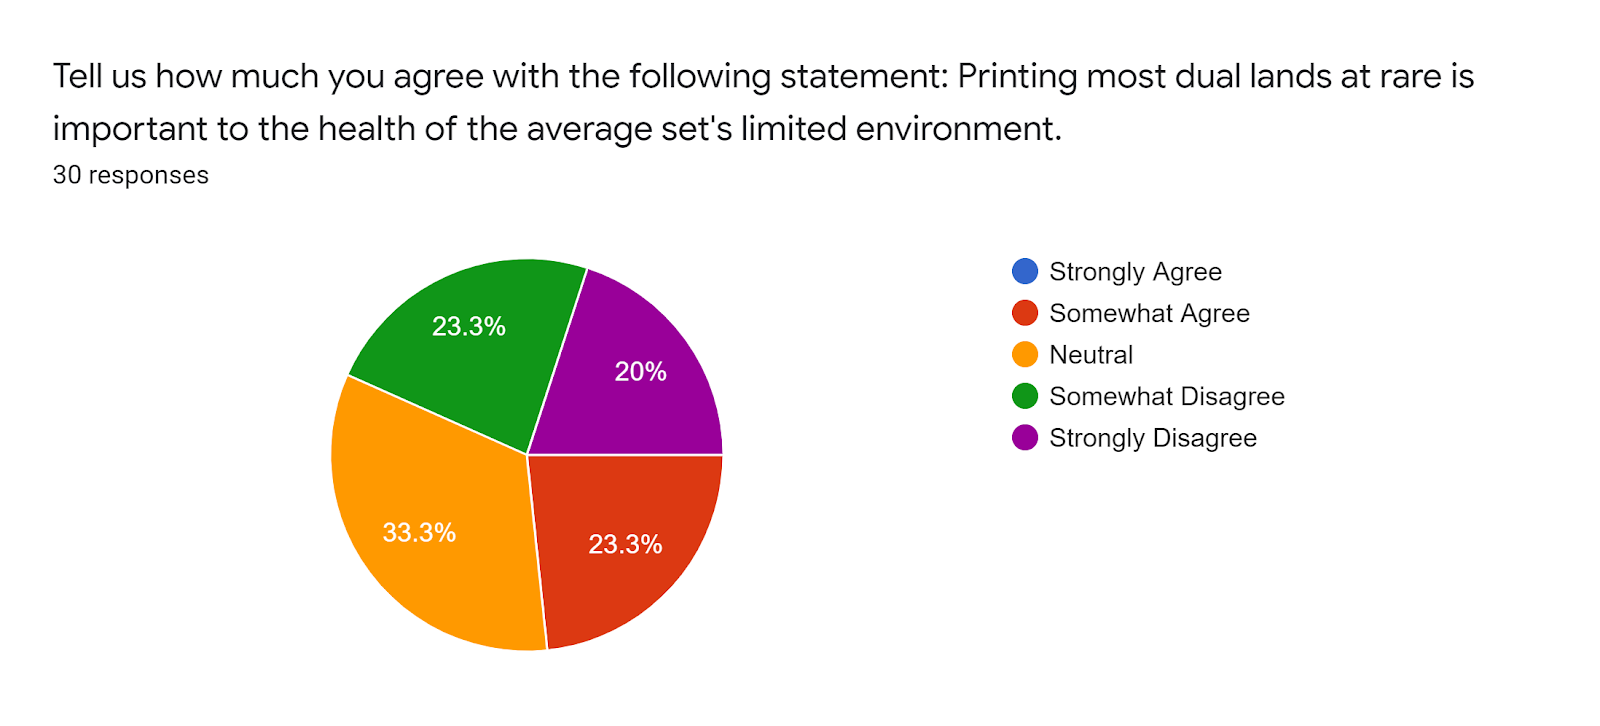 Forms response chart Question title Tell us how much you agree with the following statement Printing most dual lands at rare is important to the health of the average sets limited environment Number of responses 30 responses